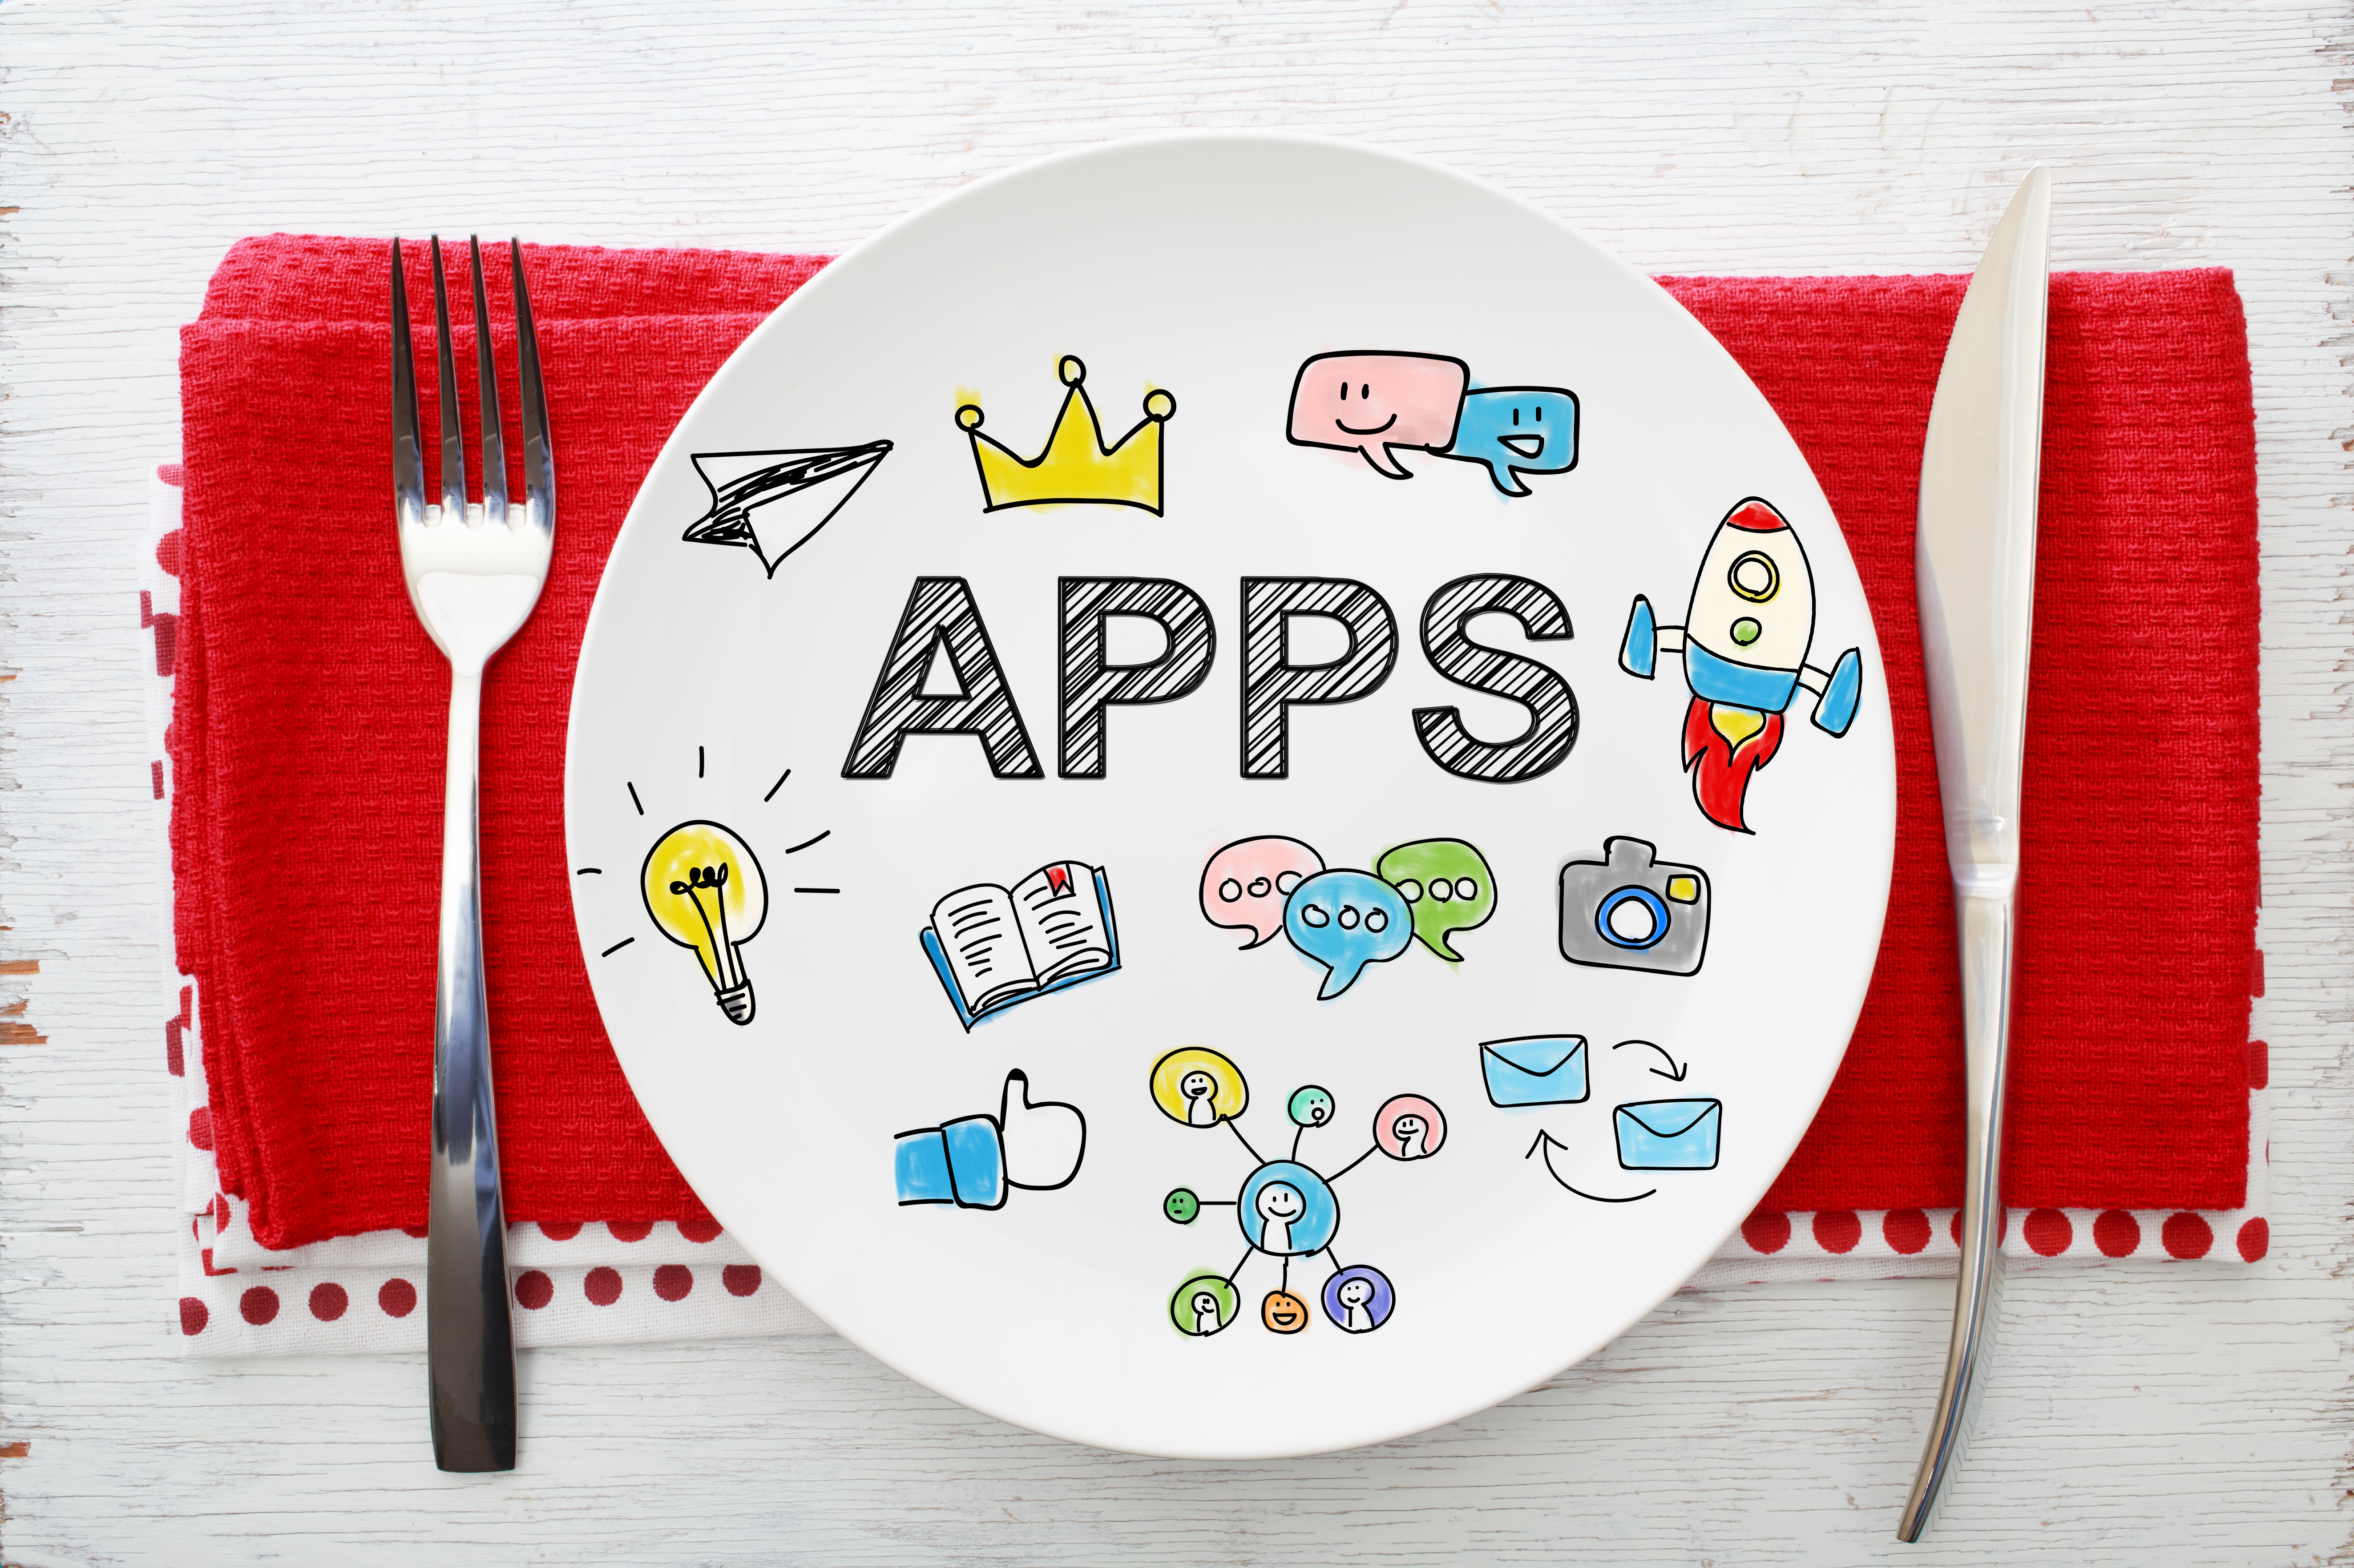 Apps concept on white plate with fork and knife on red napkins